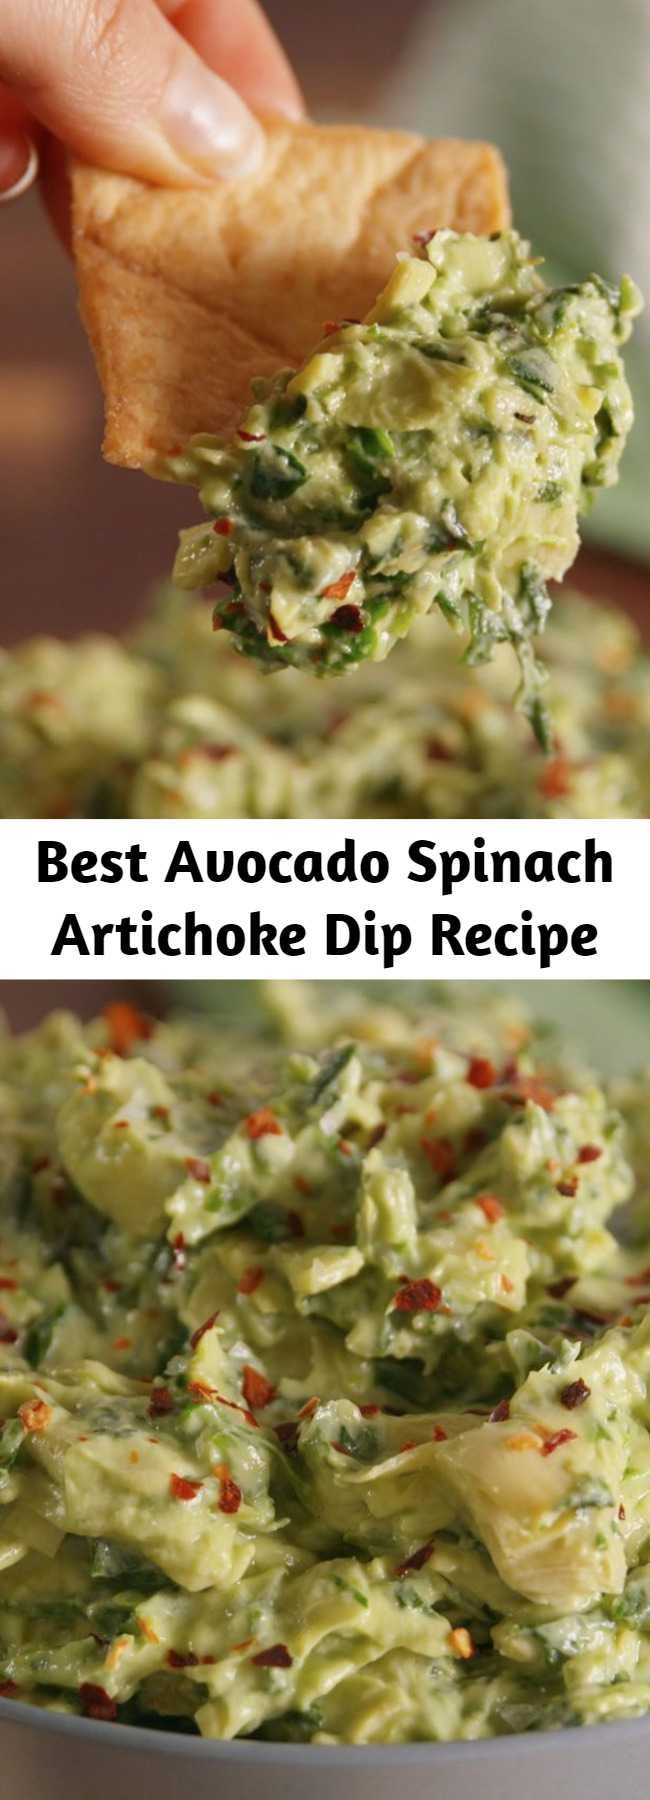 Best Avocado Spinach Artichoke Dip Recipe - Adding avocado to spinach artichoke dip is seriously life changing. The avocado adds such amazing flavor to the classic dip.